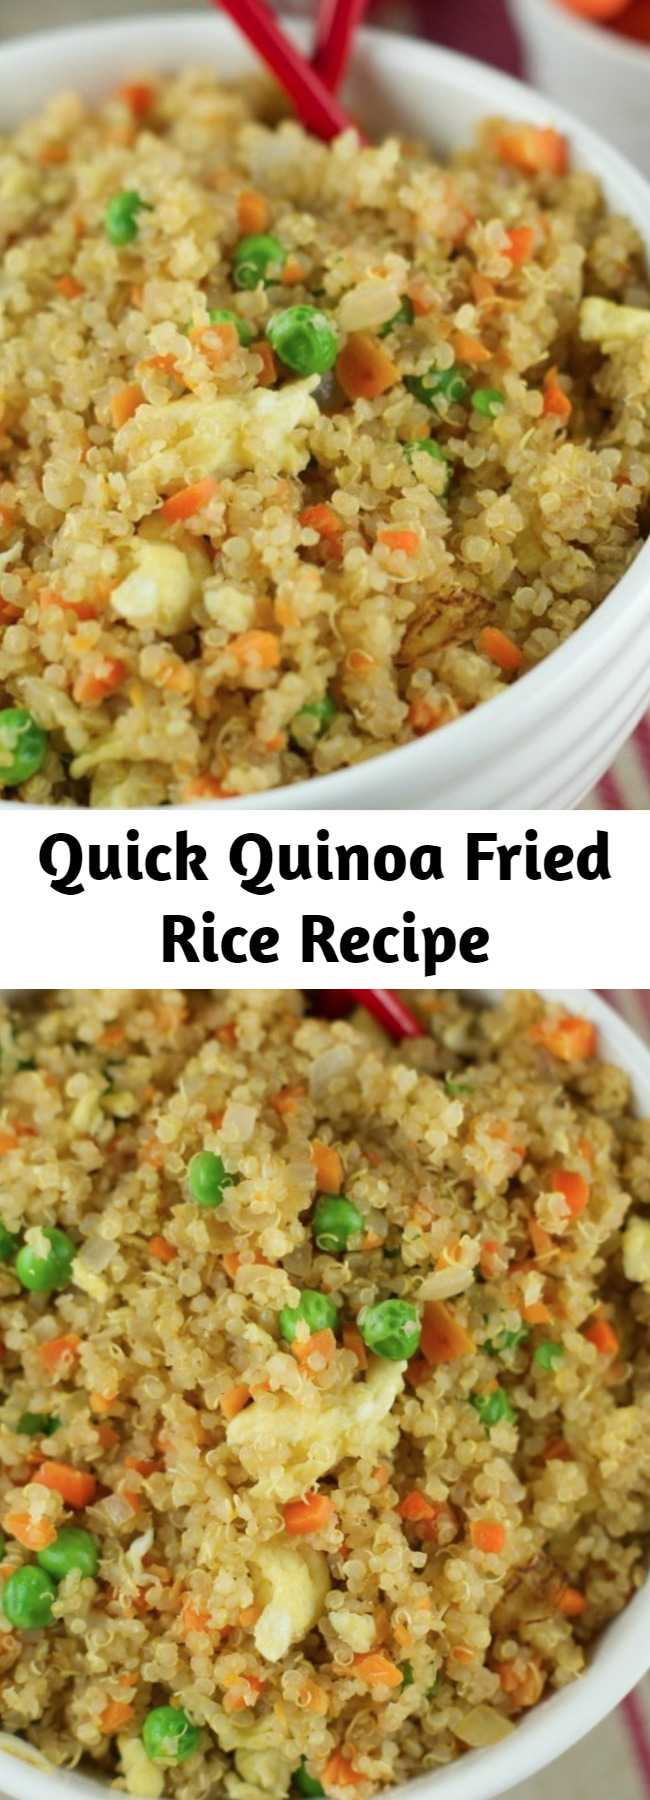 Quick Quinoa Fried Rice Recipe - This Quinoa Fried Recipe requires only 10 minutes to make and it's so delicious. Fresh veggies and quinoa make a healthy and satisfying combination. Try it!